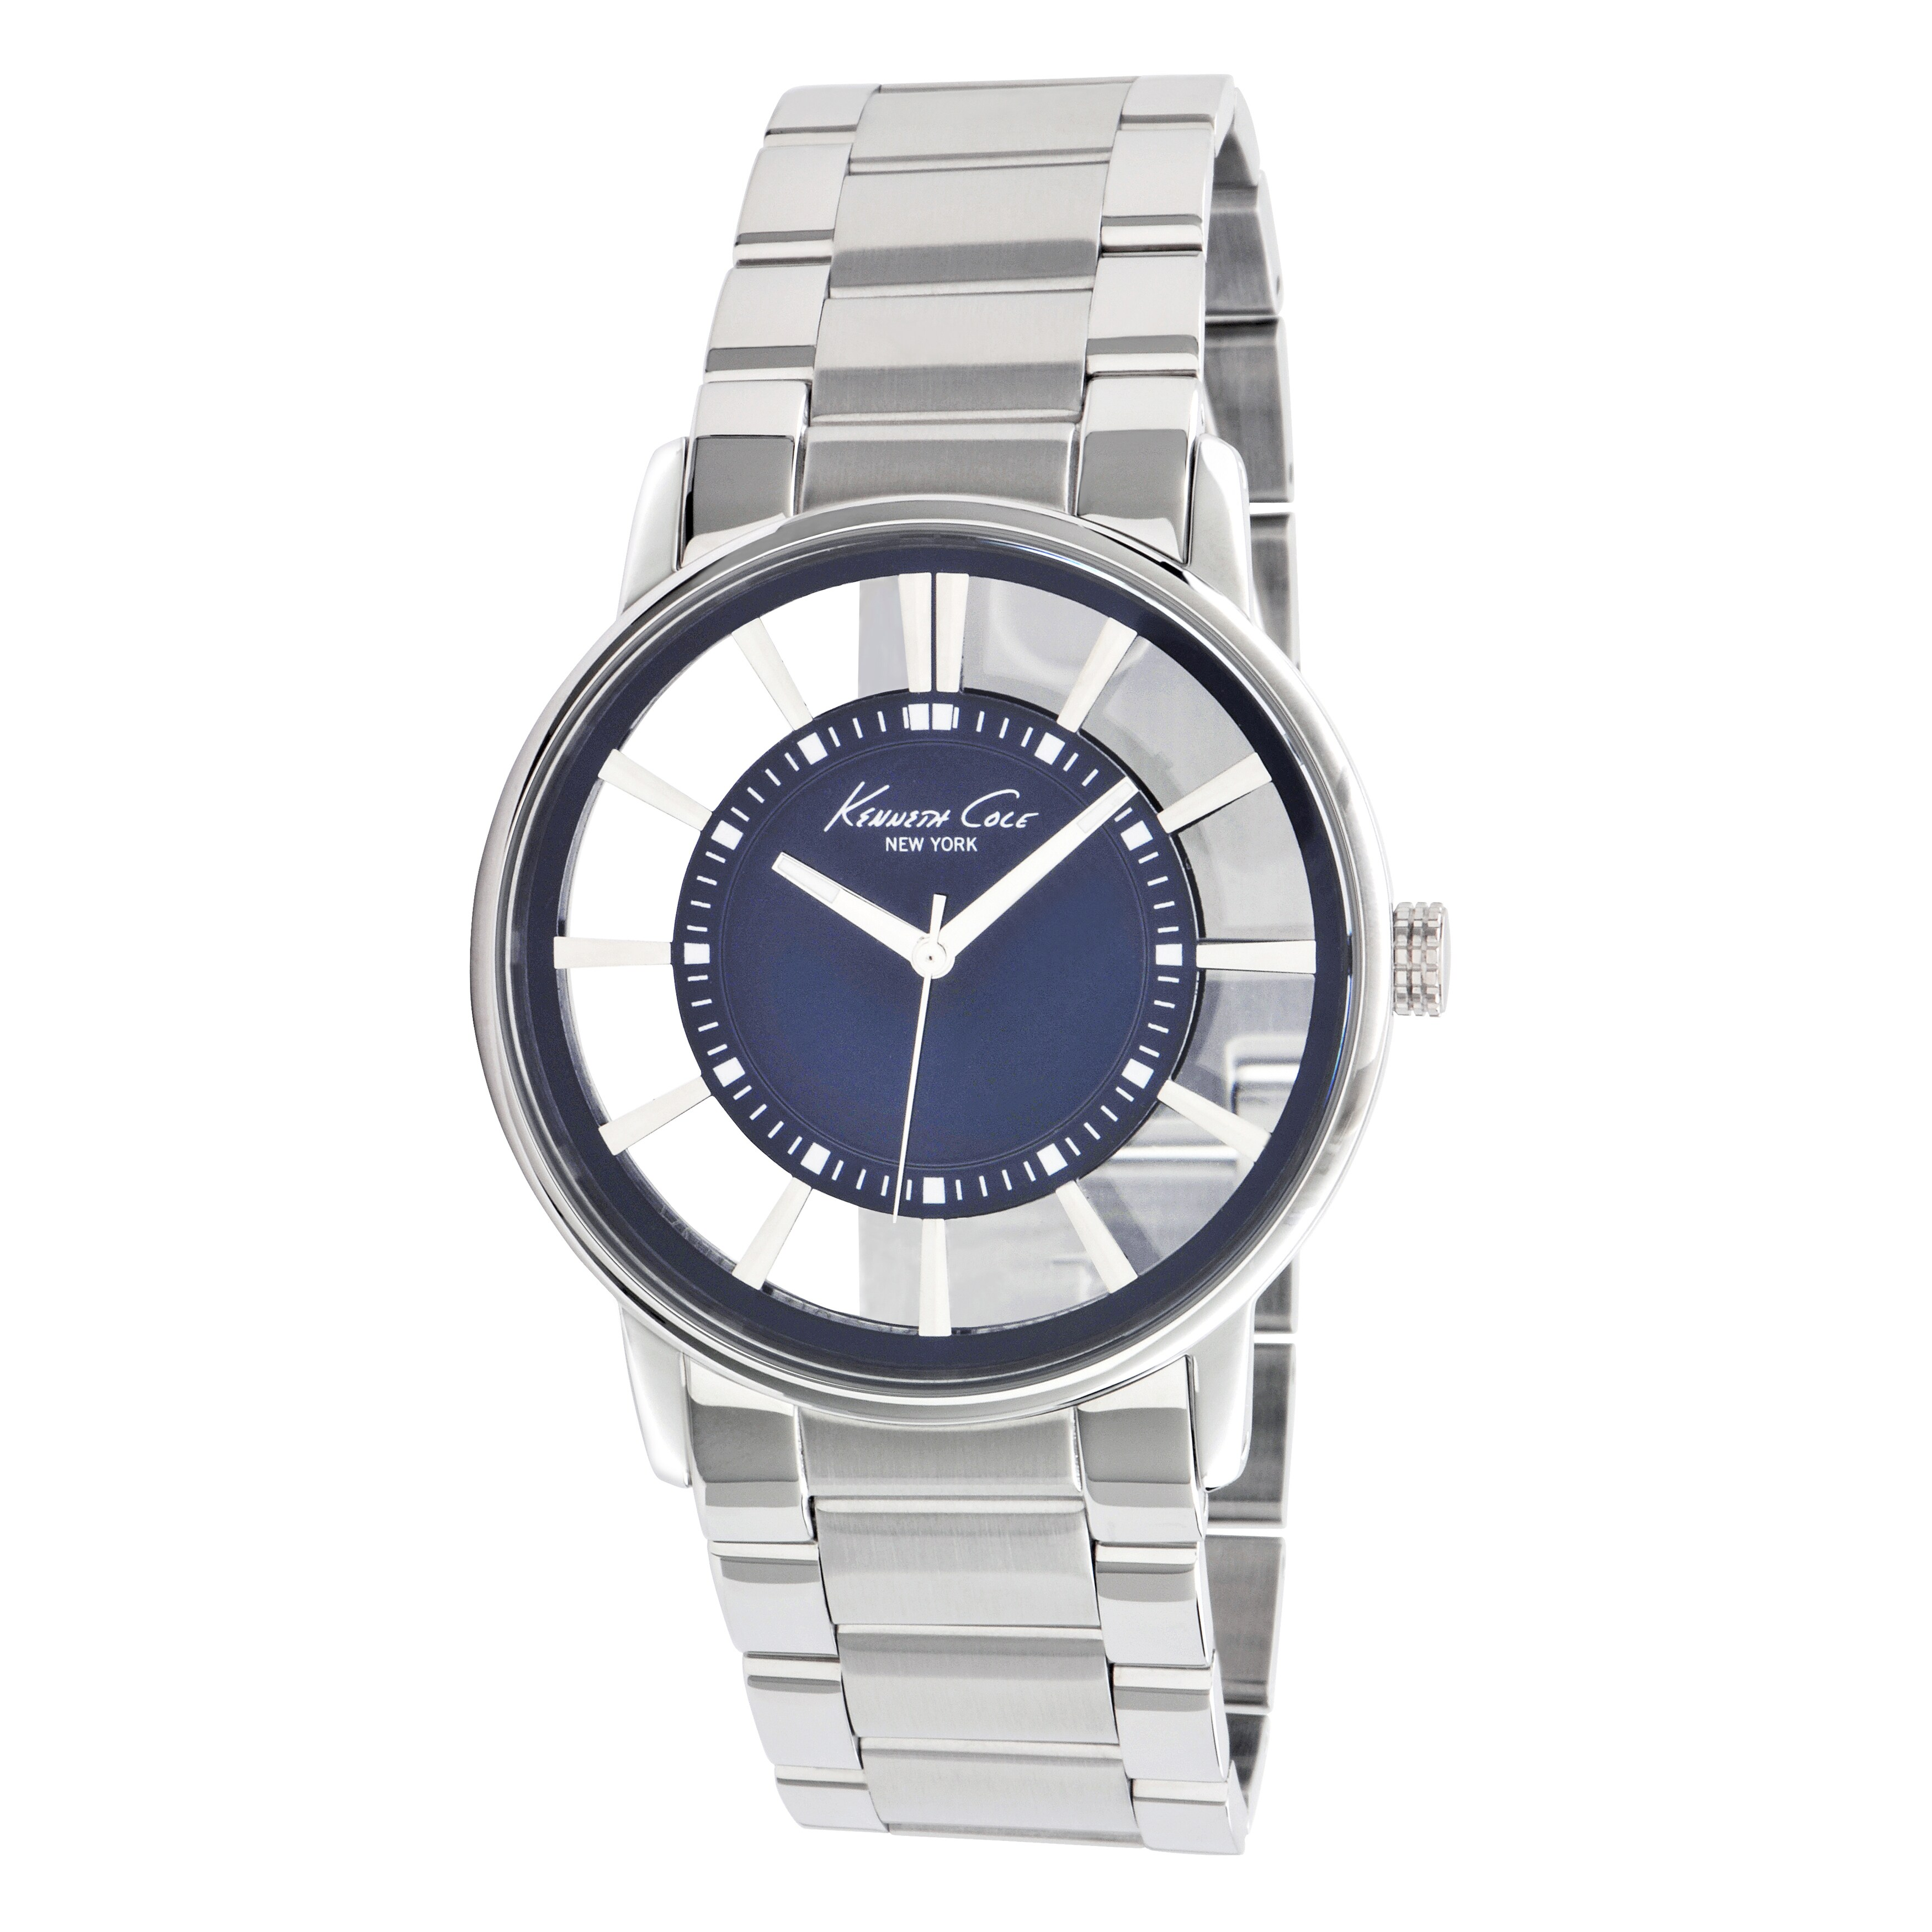 Kenneth Cole New York Men's Transparency Dial Watch